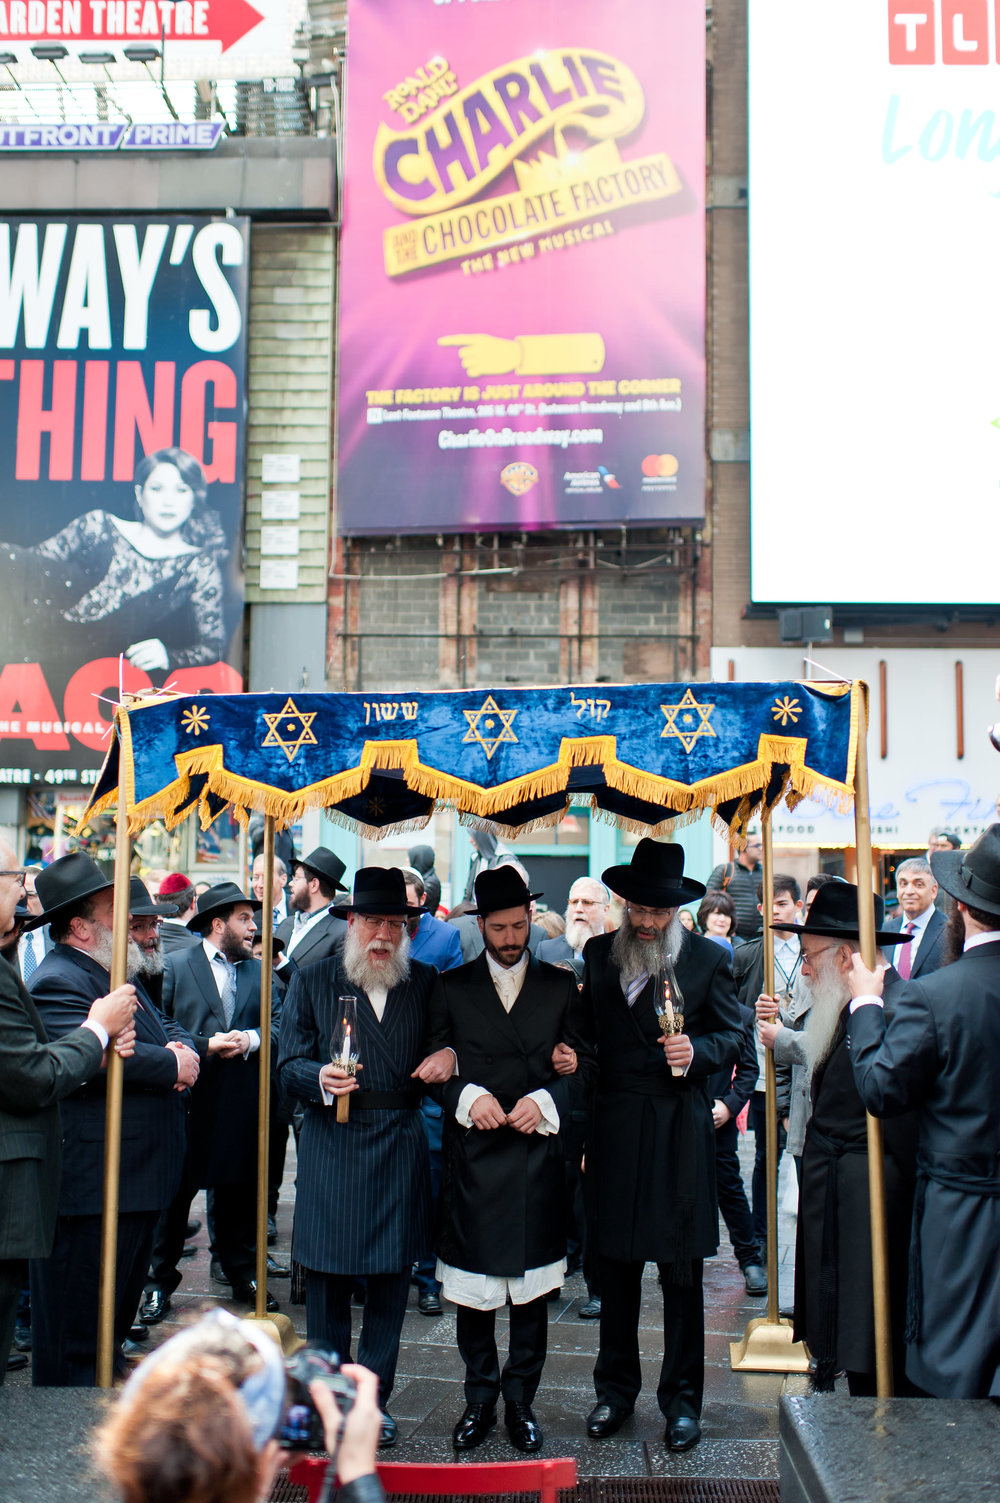 Historic Chabad Orthodox Jewish Wedding in Times Square Manhattan New York NYC Photo by Chaim Schvarcz, chuppah, father of the groom, groom, father of the bride